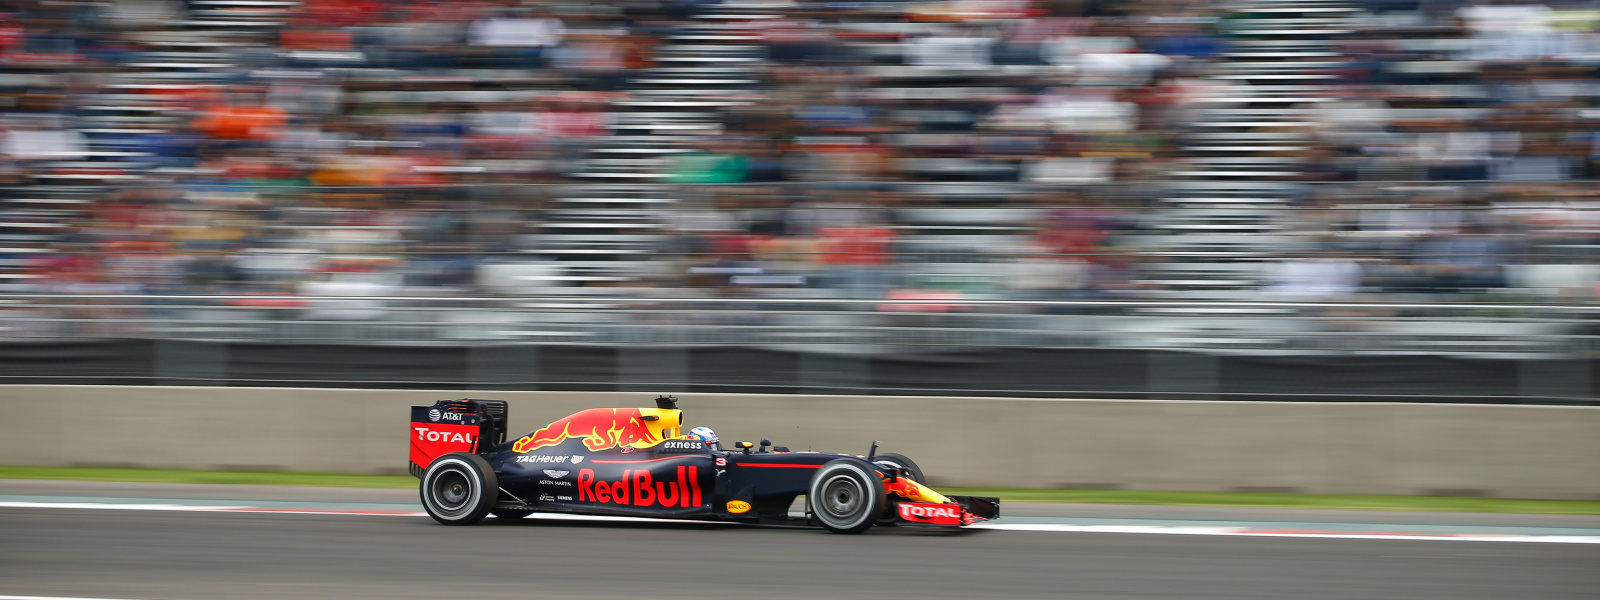 Motorsports: FIA Formula One World Championship 2016, Grand Prix of Mexico,  #3 Daniel Ricciardo (AUS, Red Bull Racing),  *** Local Caption *** +++ www.hoch-zwei.net +++ copyright: HOCH ZWEI +++